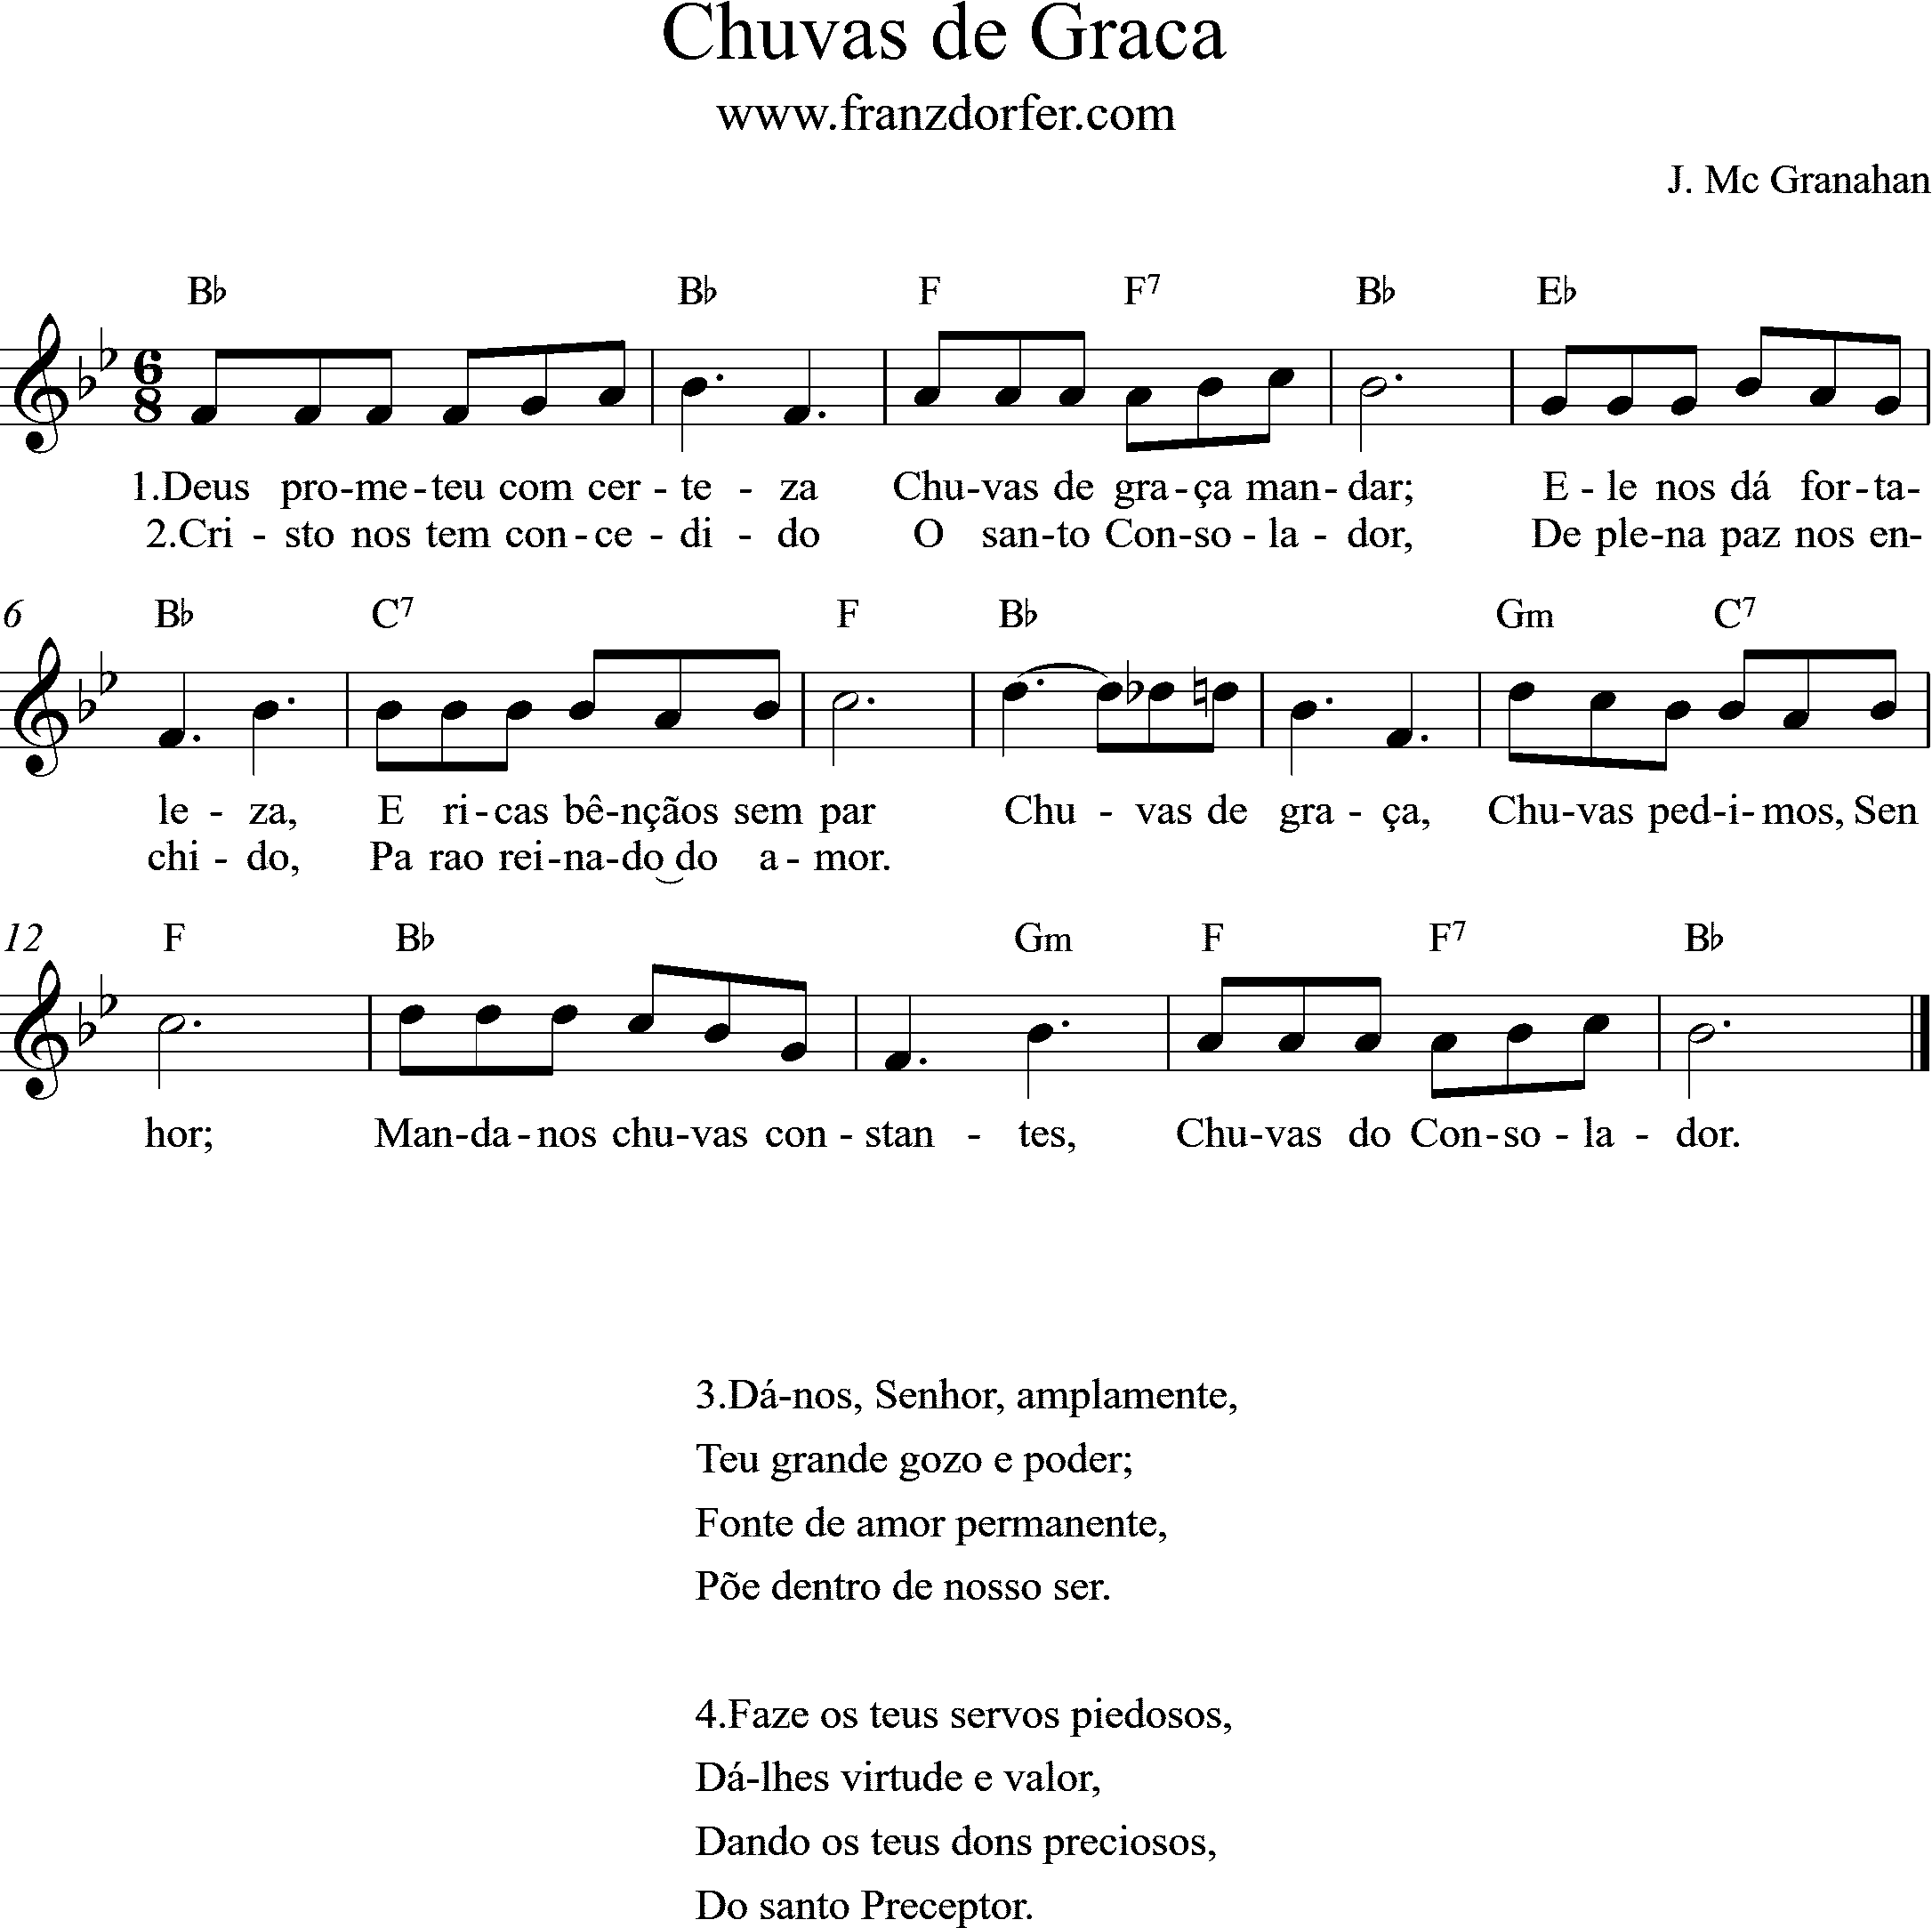 sheetmusic - Chuva de Graca